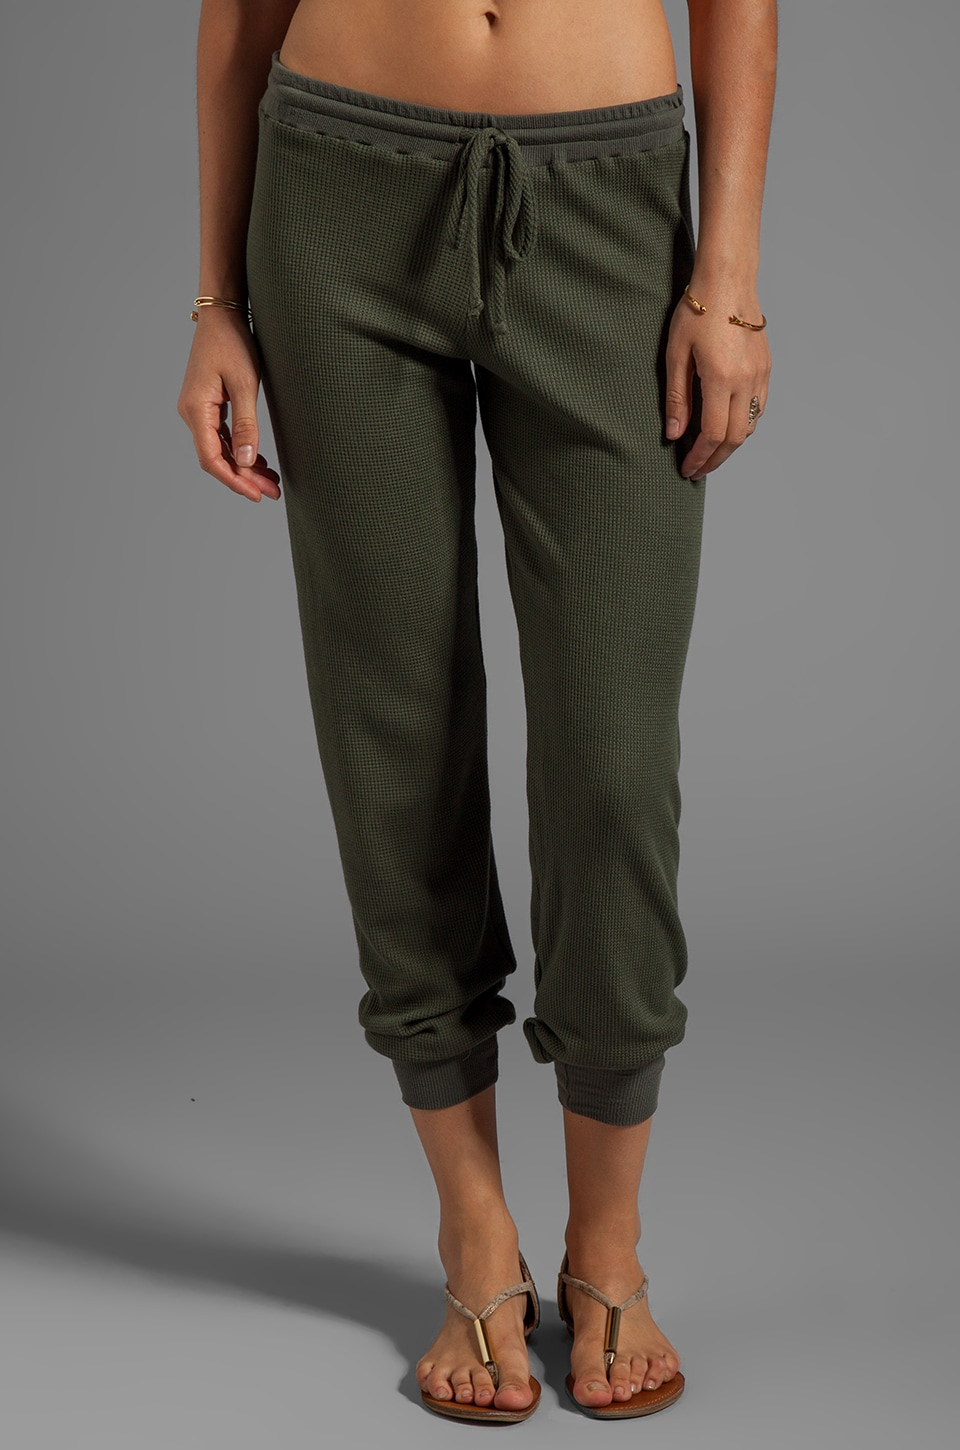 Feel the Piece Thermal Jamie Draw String Pant in Army